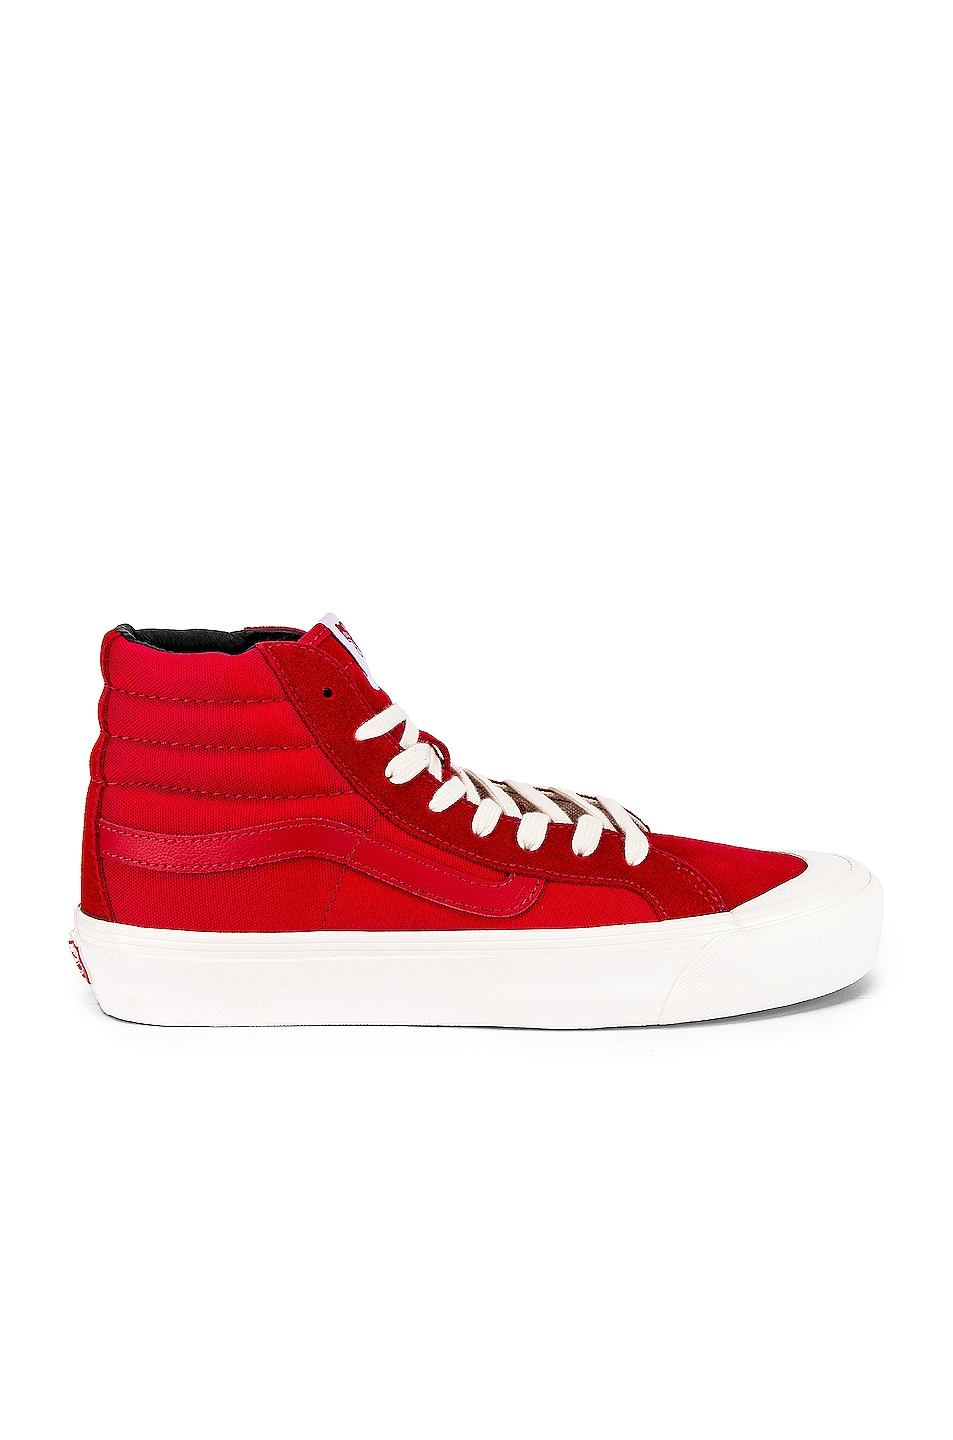 Image 1 of Vans Vault OG Style 138 LX in Racing Red & Checkerboard